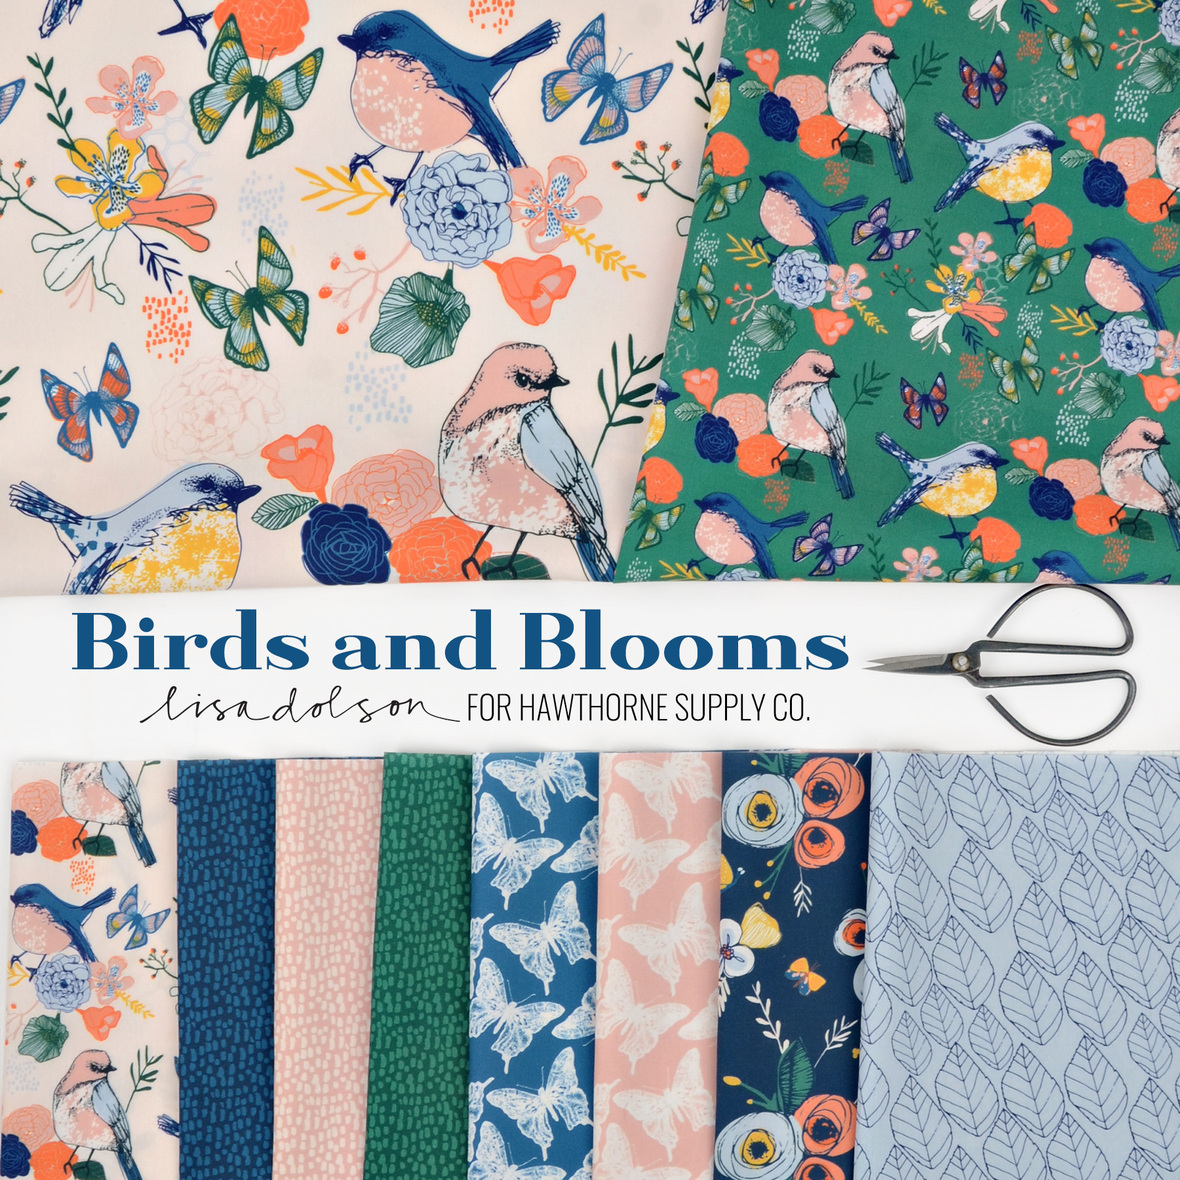 Lisa-Dolson-Birds-and-Blooms-Fabric-at-Hawthorne-Supply-Co